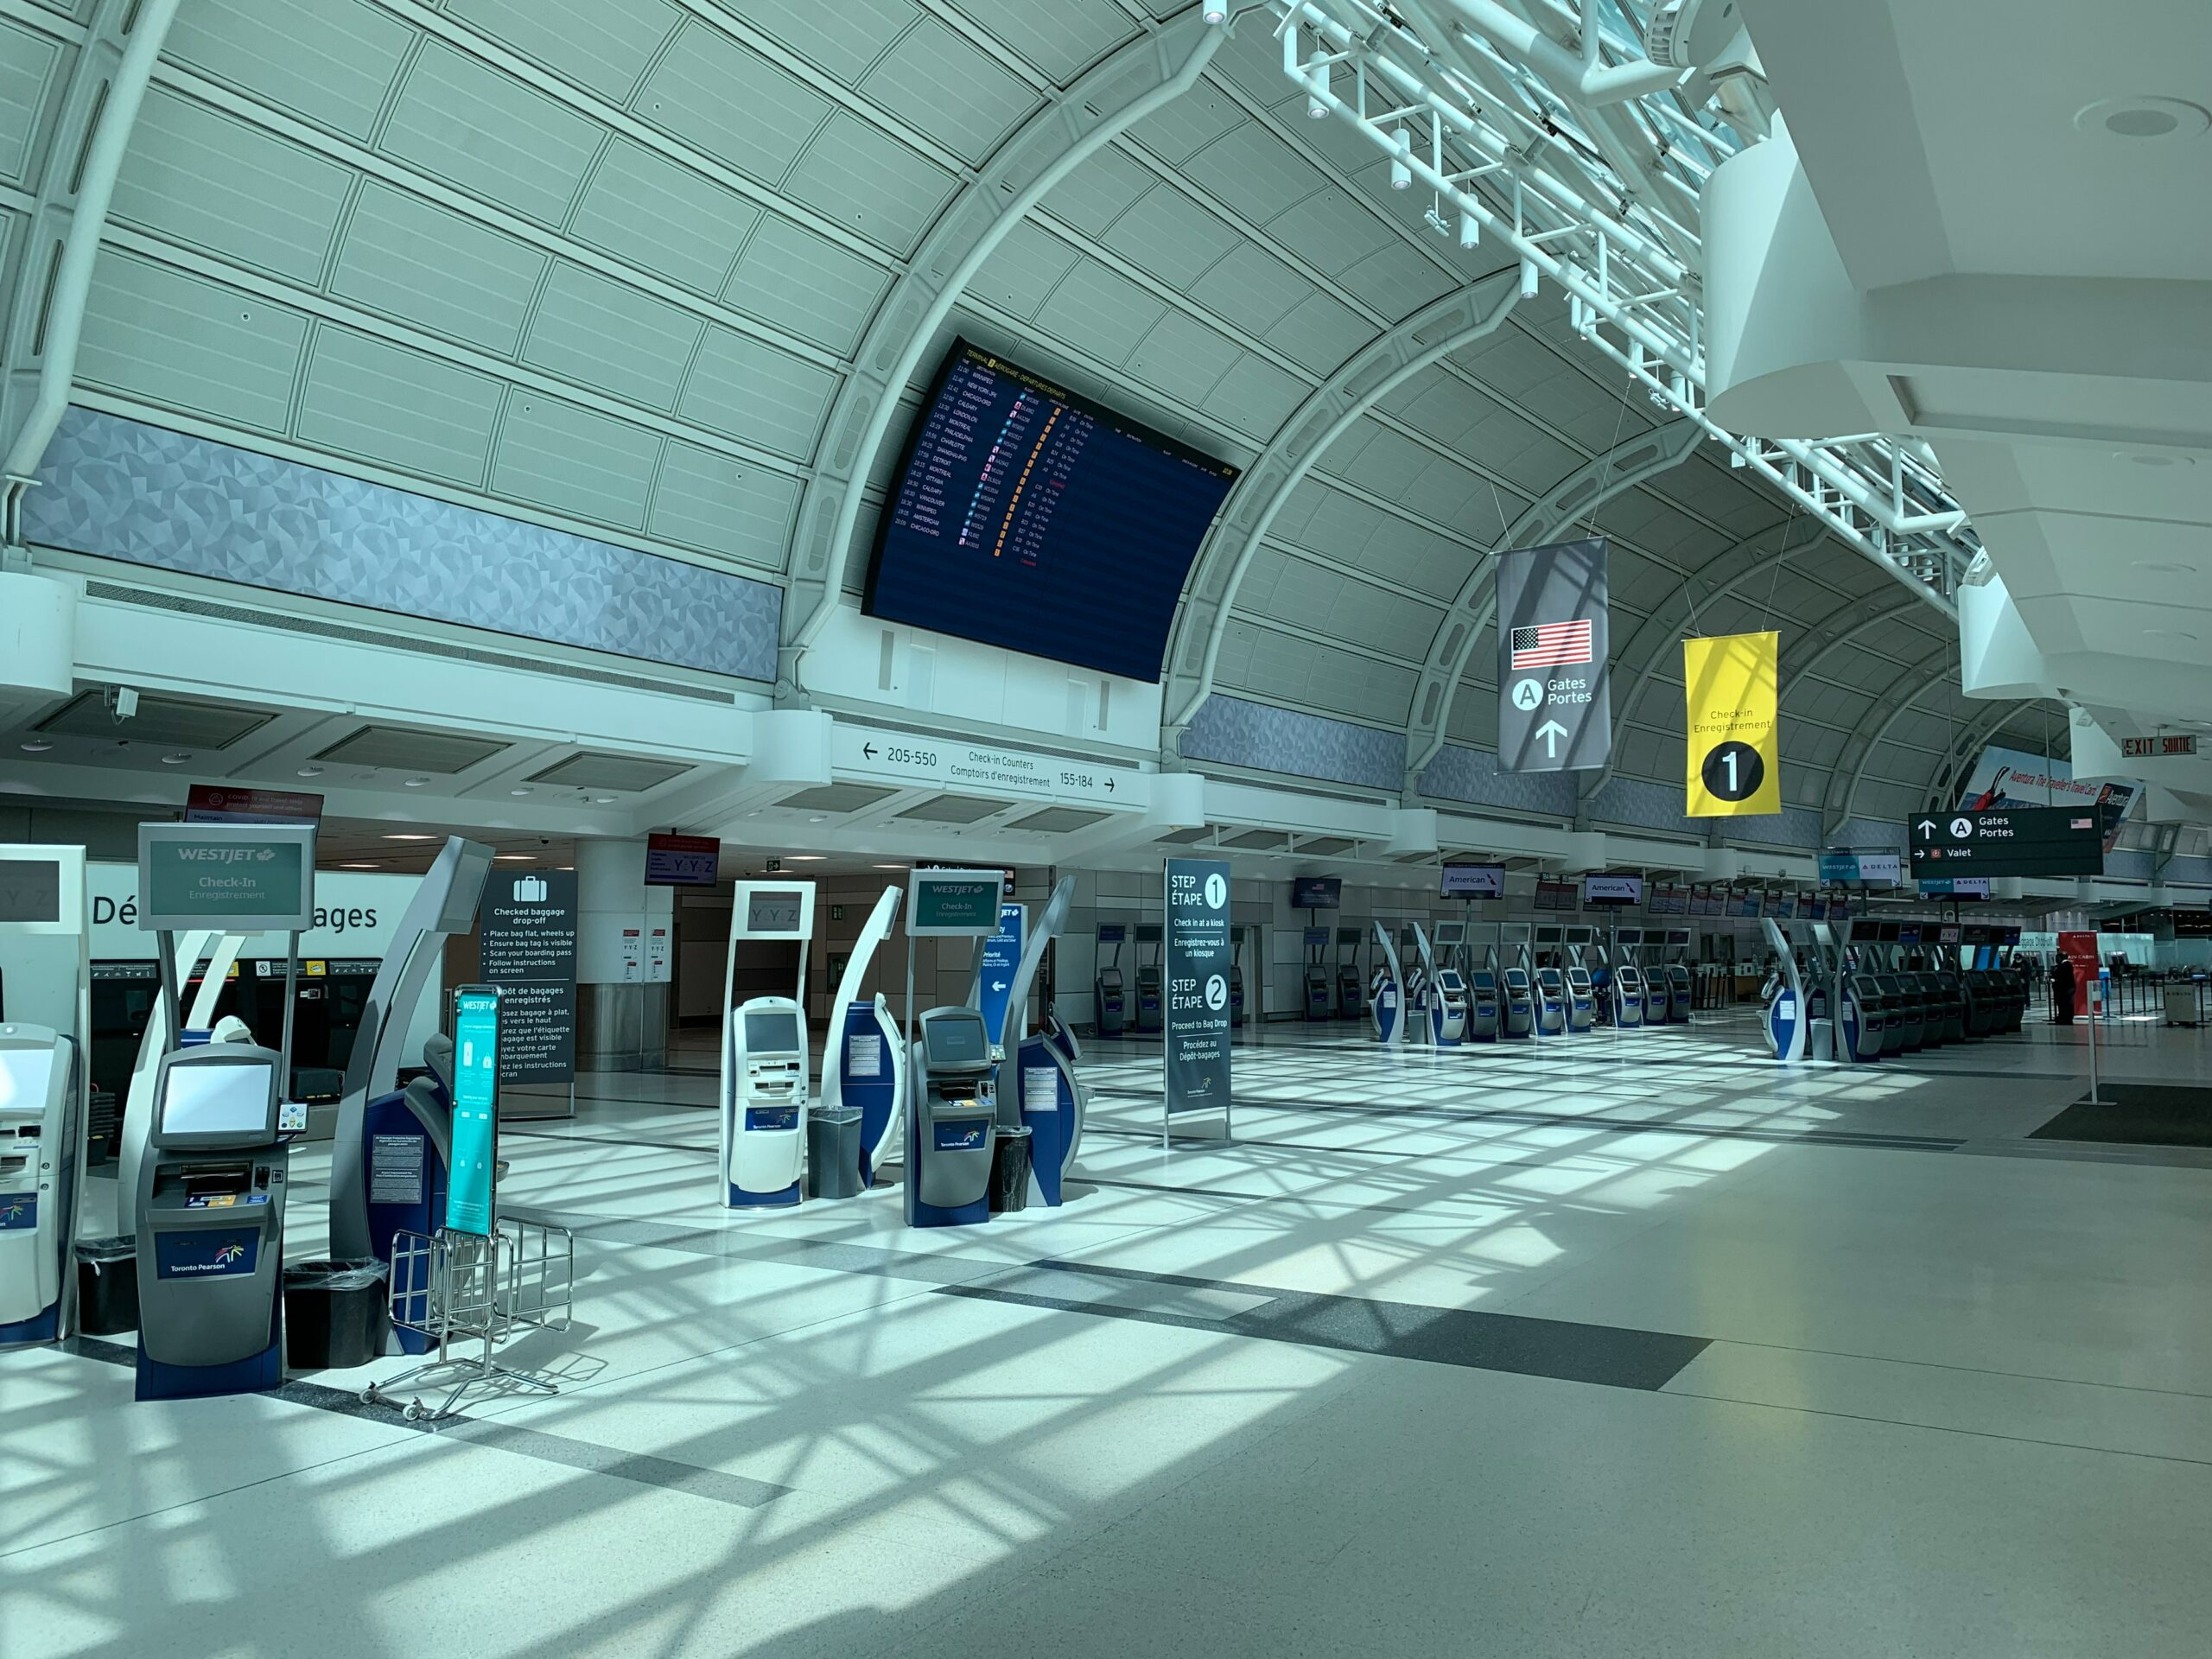 Travel Safety Tips: An empty airport terminal